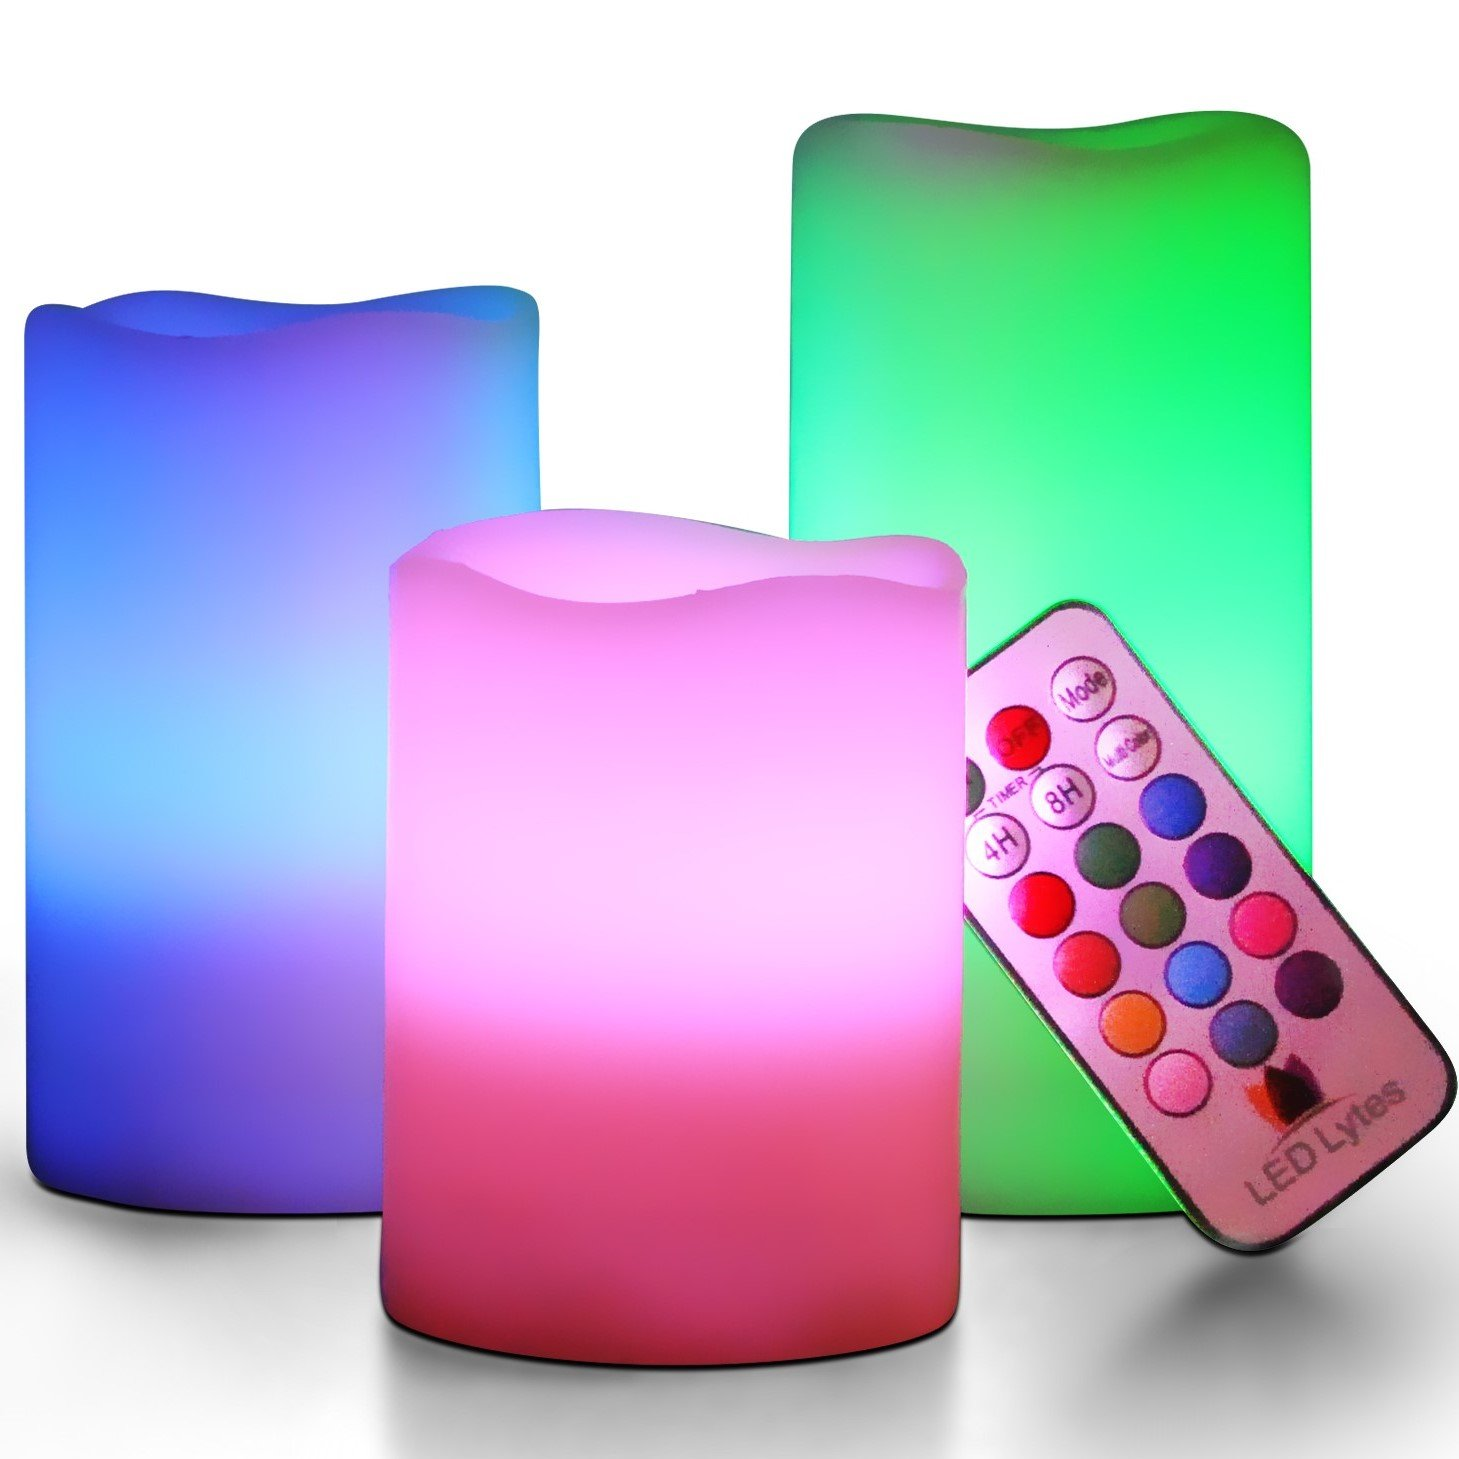 LED Lytes Flickering Flameless Candles - Battery Operated Candles Vanilla Scented Set of 3 Round Ivory Wax Flickering Multi Colored Flame, auto-Off Timer Remote Control Weddings Gifts by LED Lytes